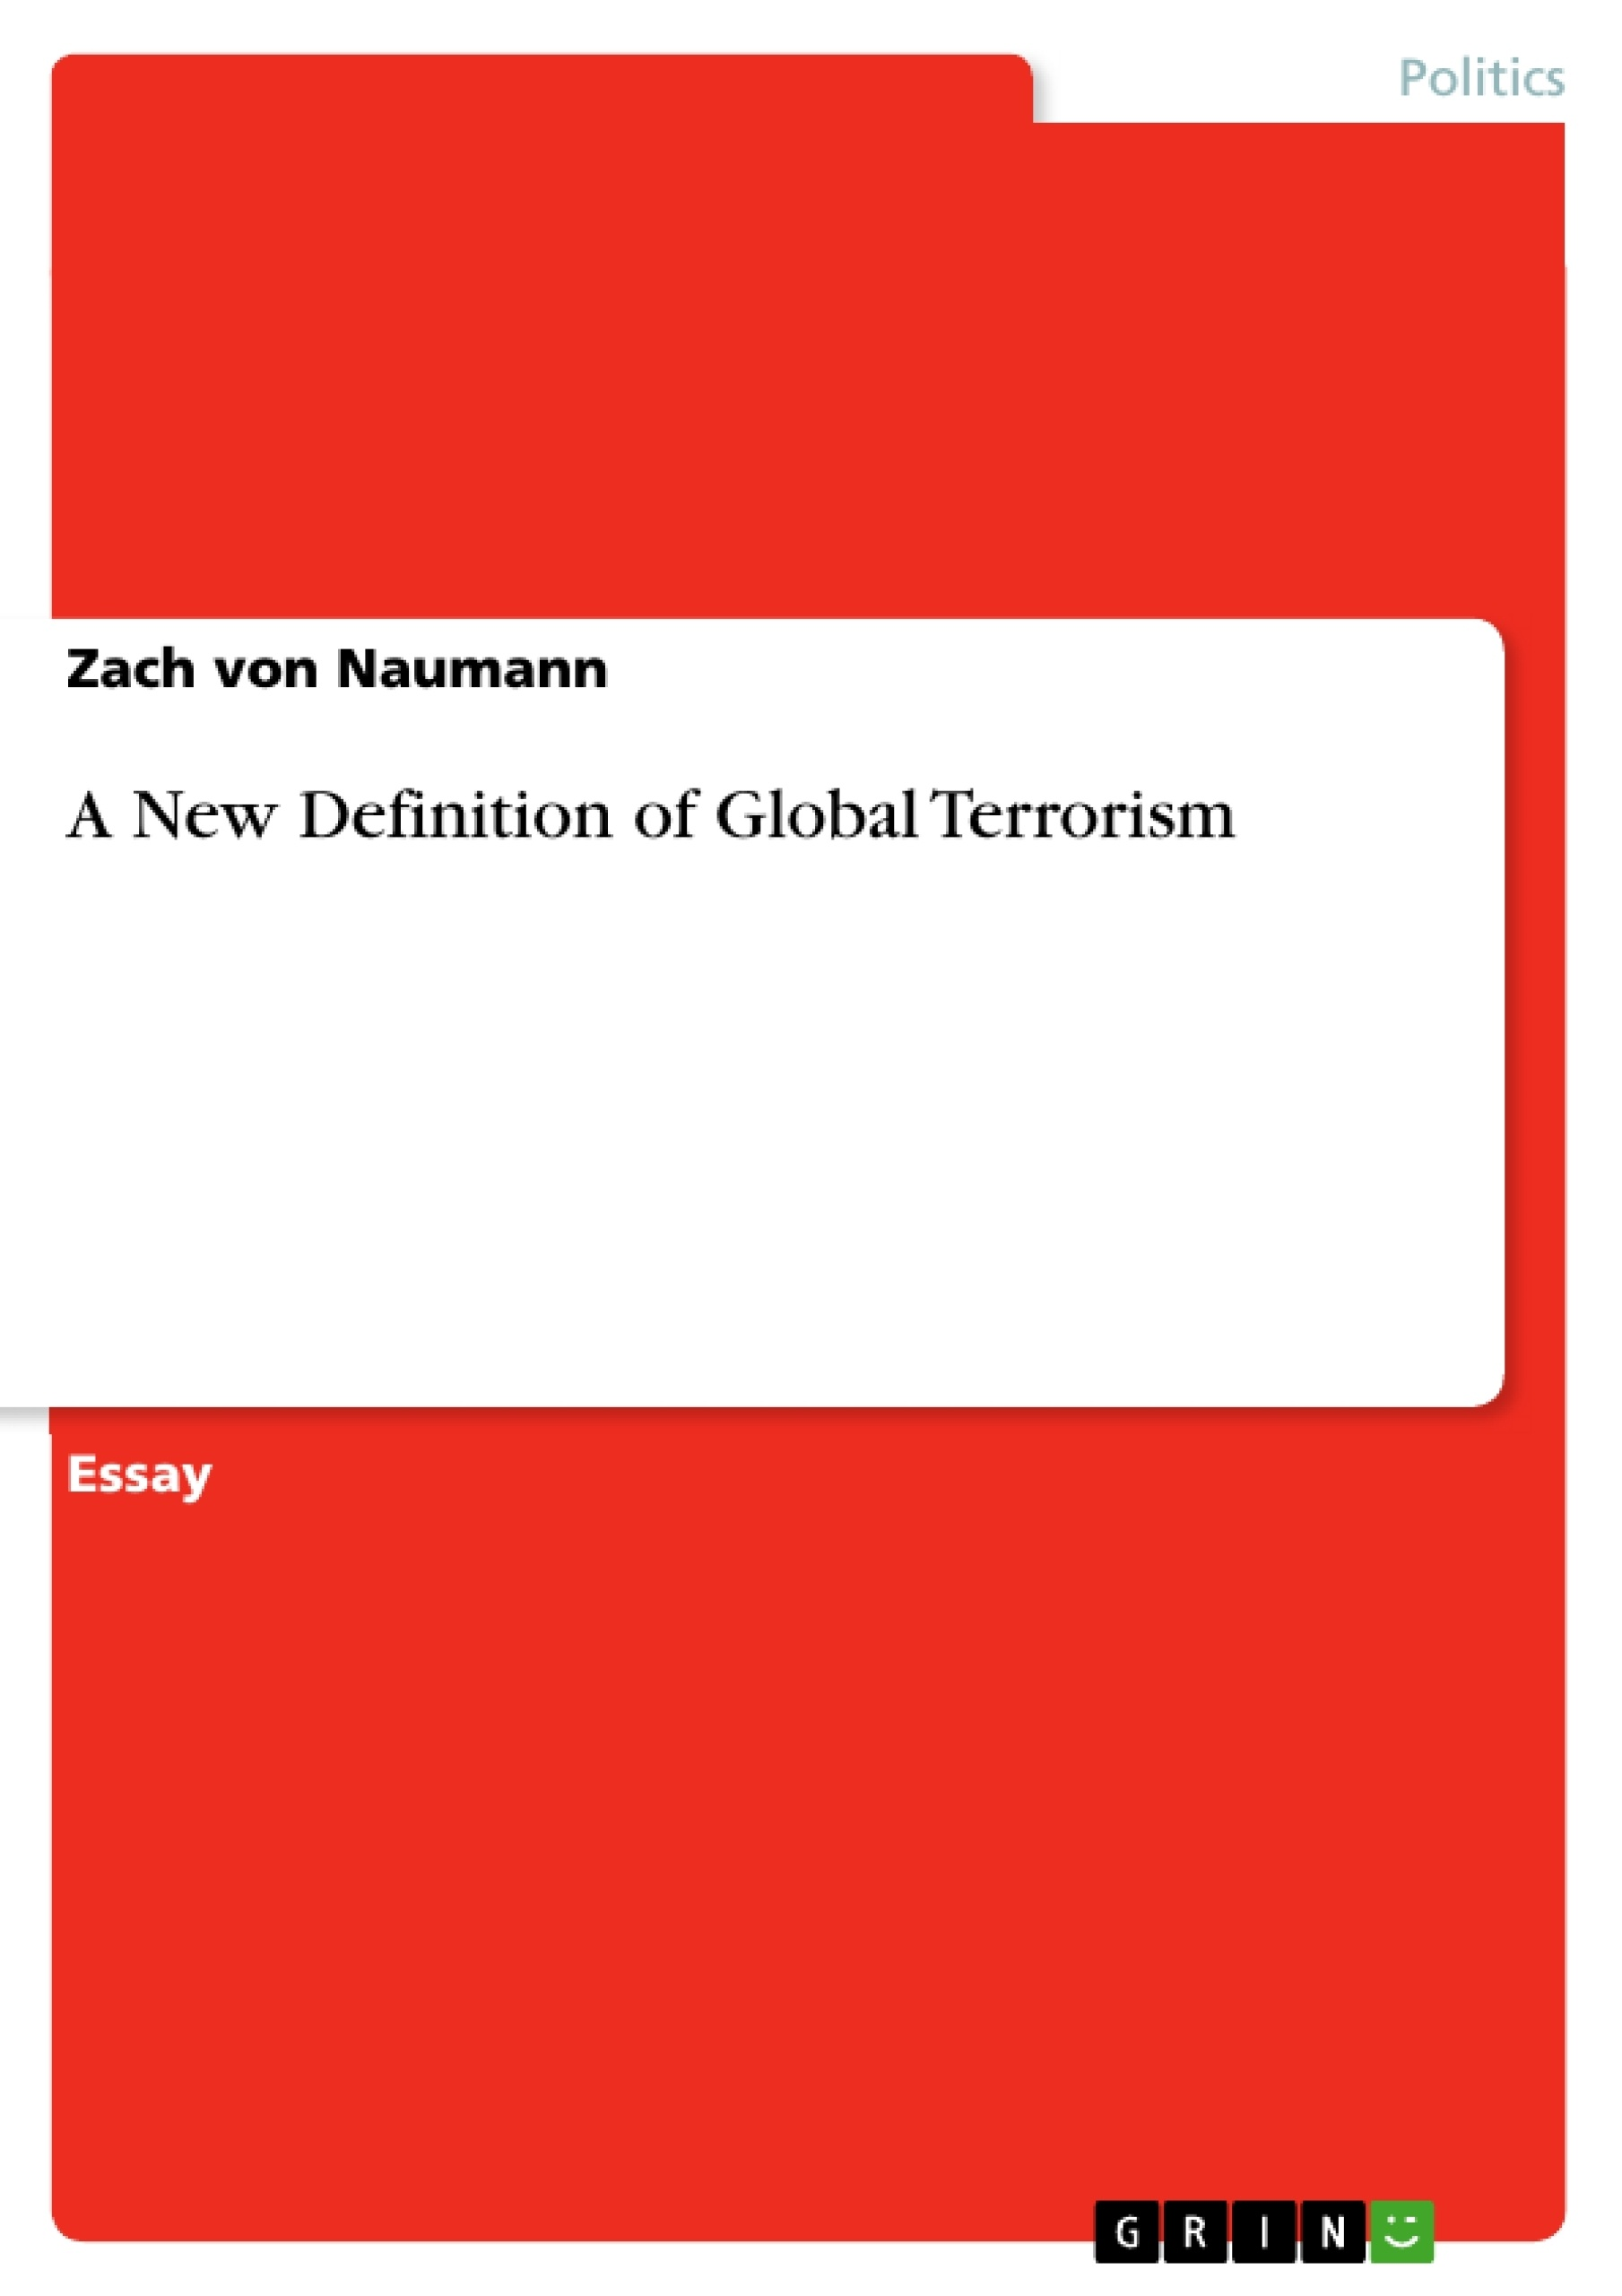 a new definition of global terrorism publish your master s a new definition of global terrorism publish your master s thesis bachelor s thesis essay or term paper